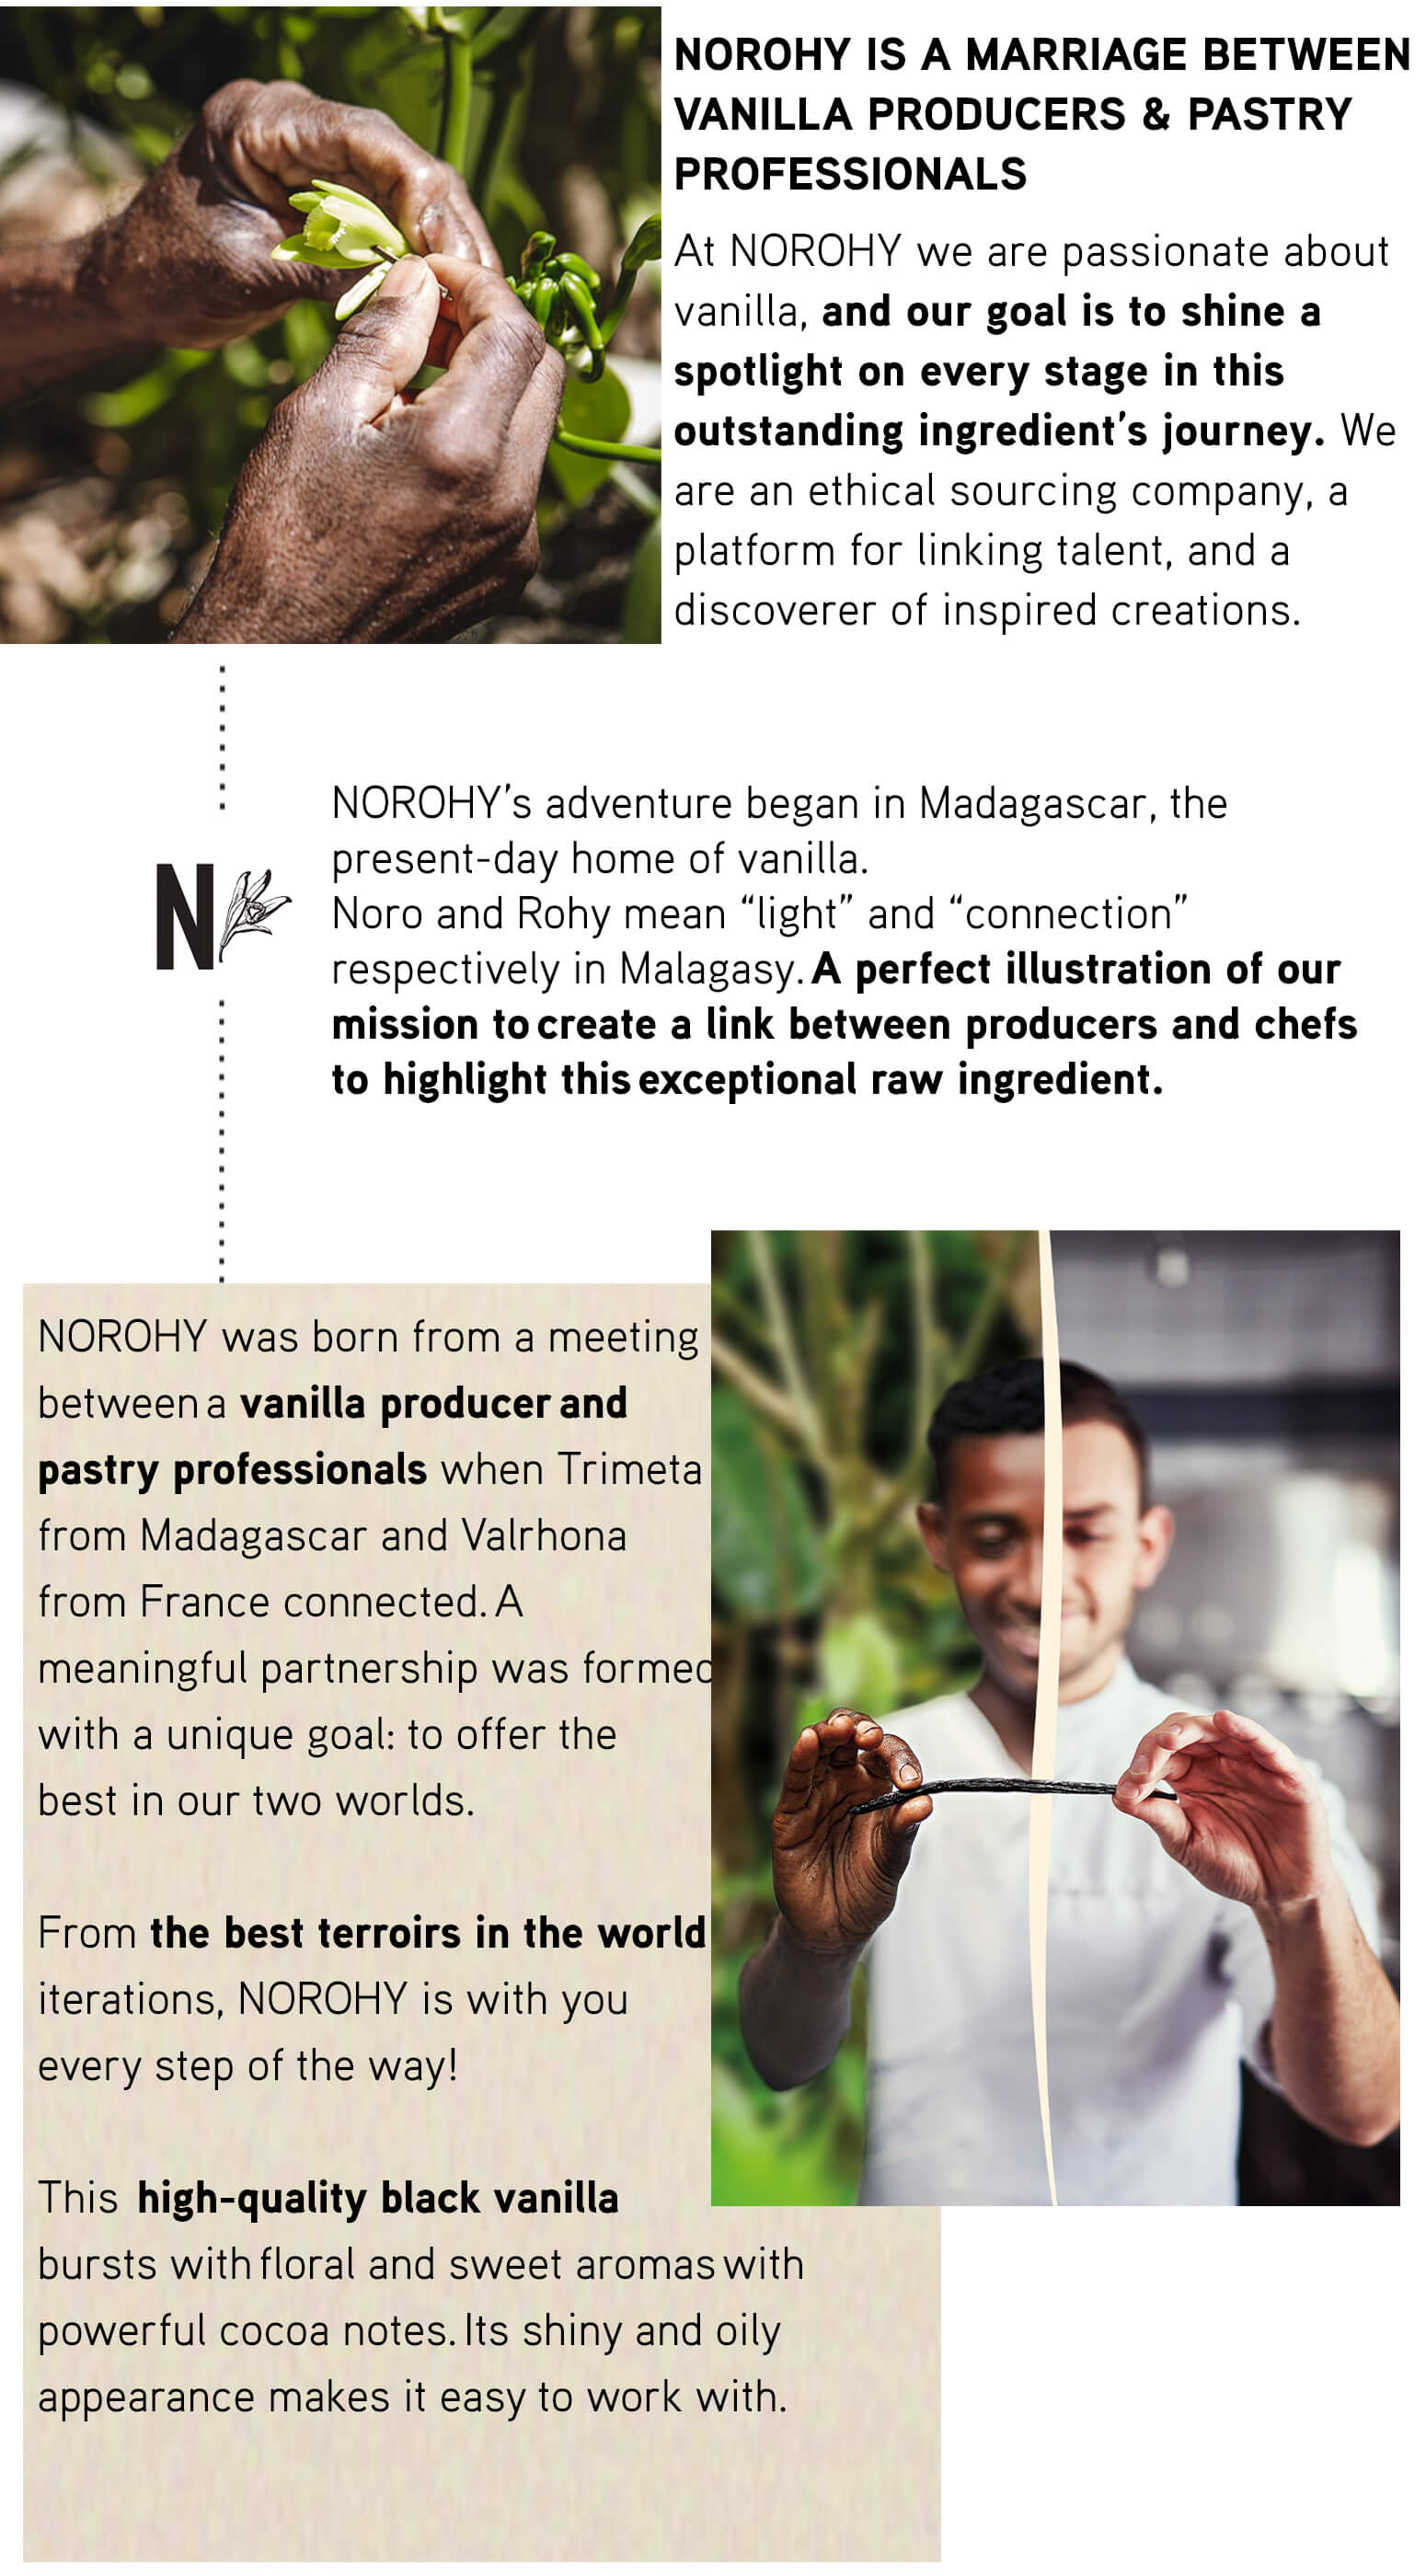 NOROHY IS A MARRIAGE BETWEEN VANILLA PRODUCERS & PASTRY PROFESSIONALS At NOROHY we are passionate about vanilla, and our goal is to shine a spotlight on every stage in this outstanding ingredient's journey. We are an ethical sourcing company, a platform for linking talent, and a discoverer of inspired creations.